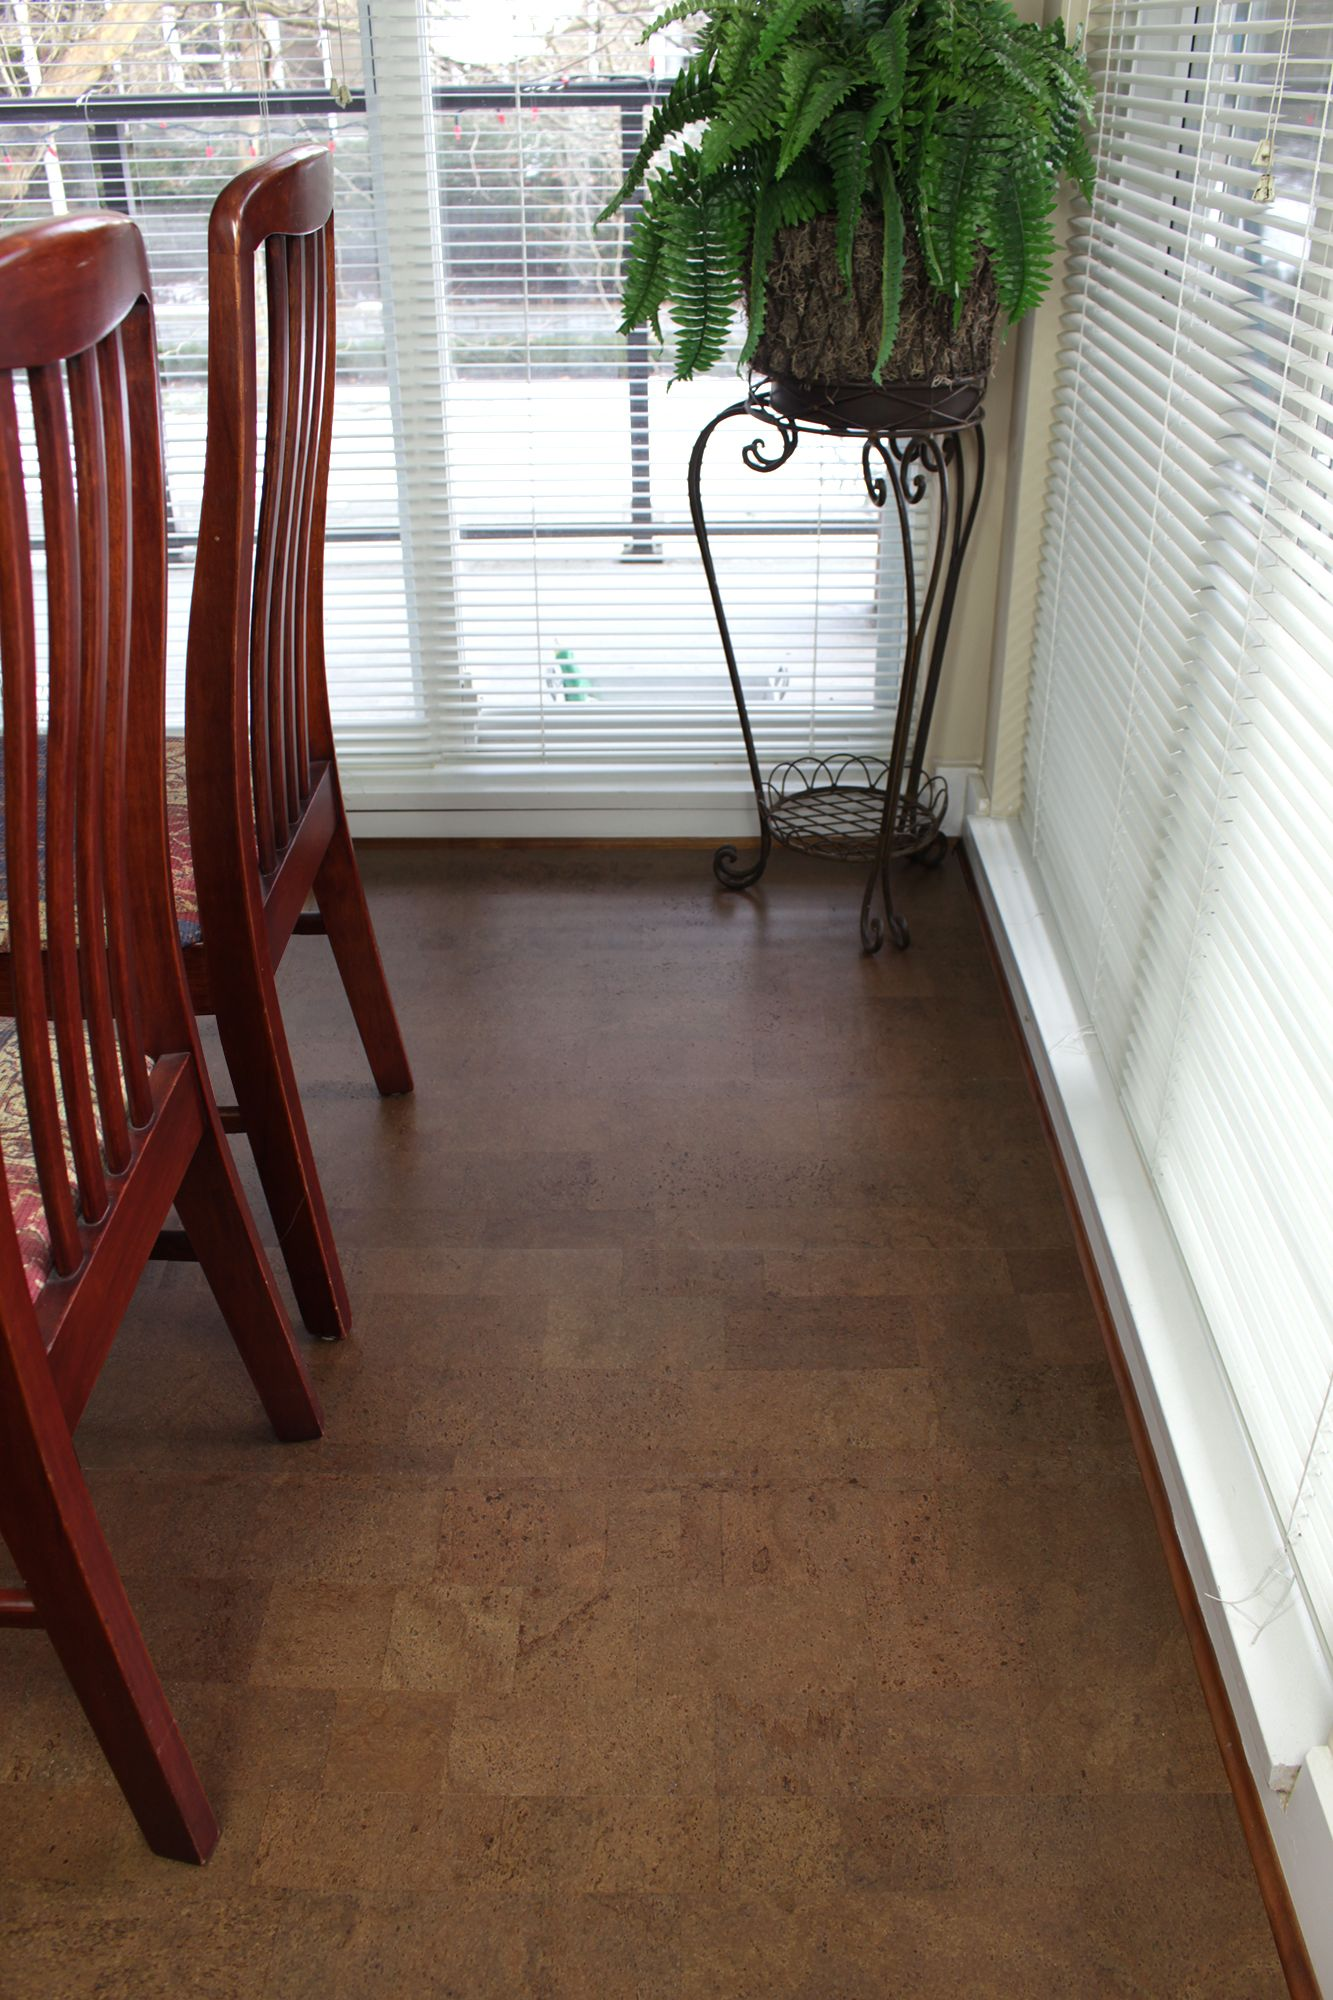 Add style to your home with cork flooring cork flooring is more add style to your home with cork flooring cork flooring is more than just dailygadgetfo Choice Image